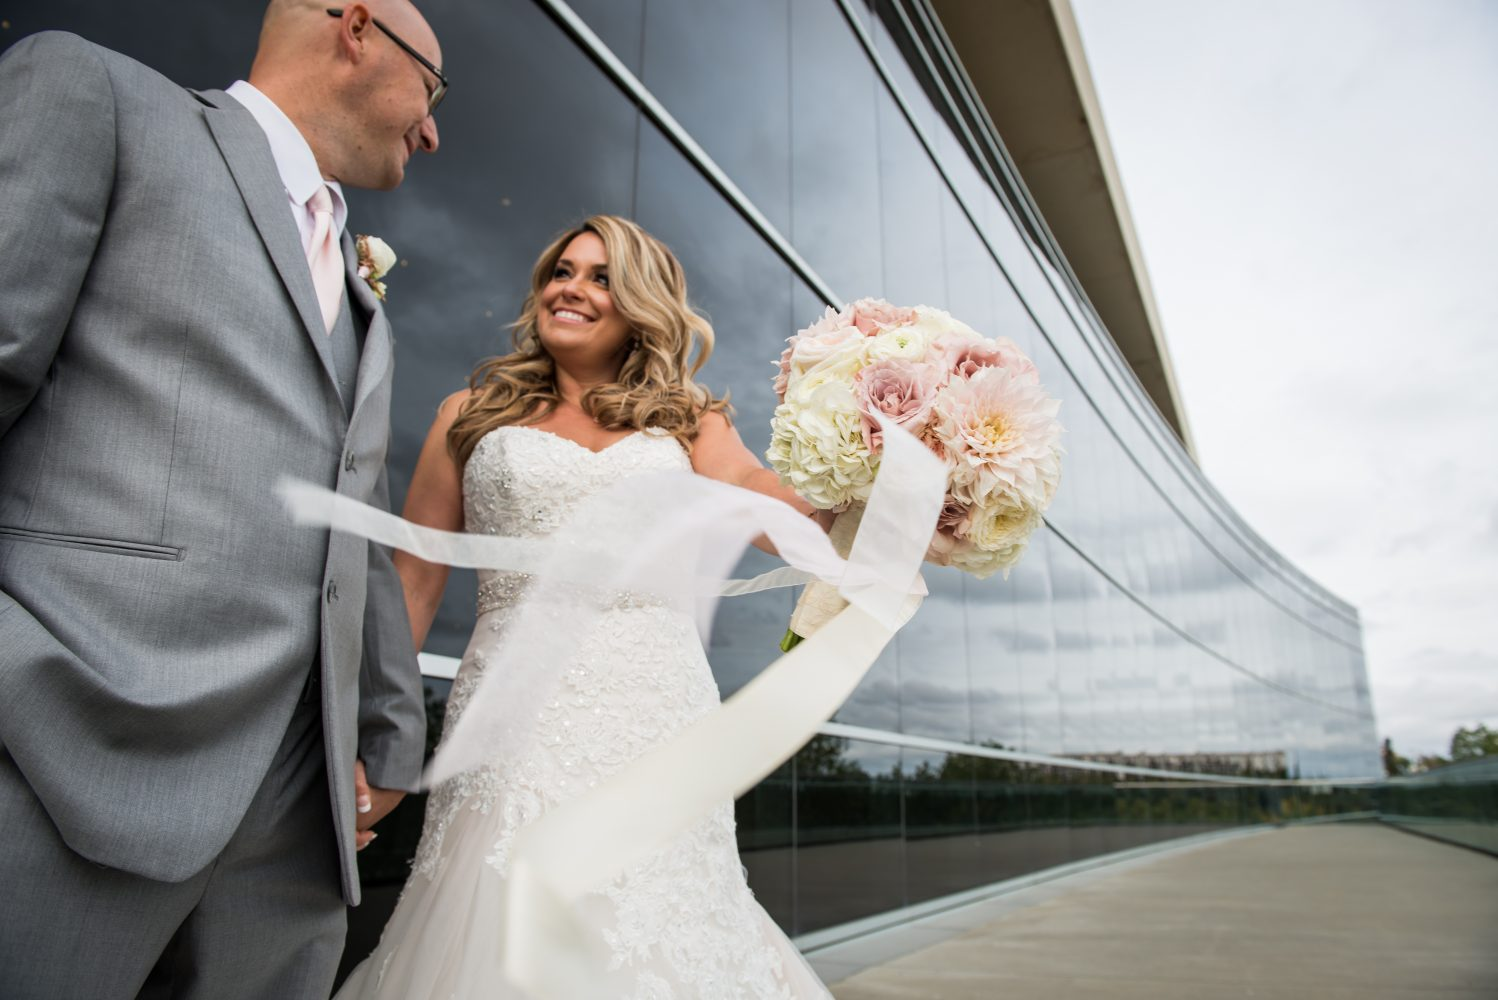 A windy photograph of a stunning bride and groom with their beautiful boquet from Fabloomosity in between their ceremony and reception at the Union Bank Inn. Photo taken at the Shaw Conference Centre | 3Haus Photographics